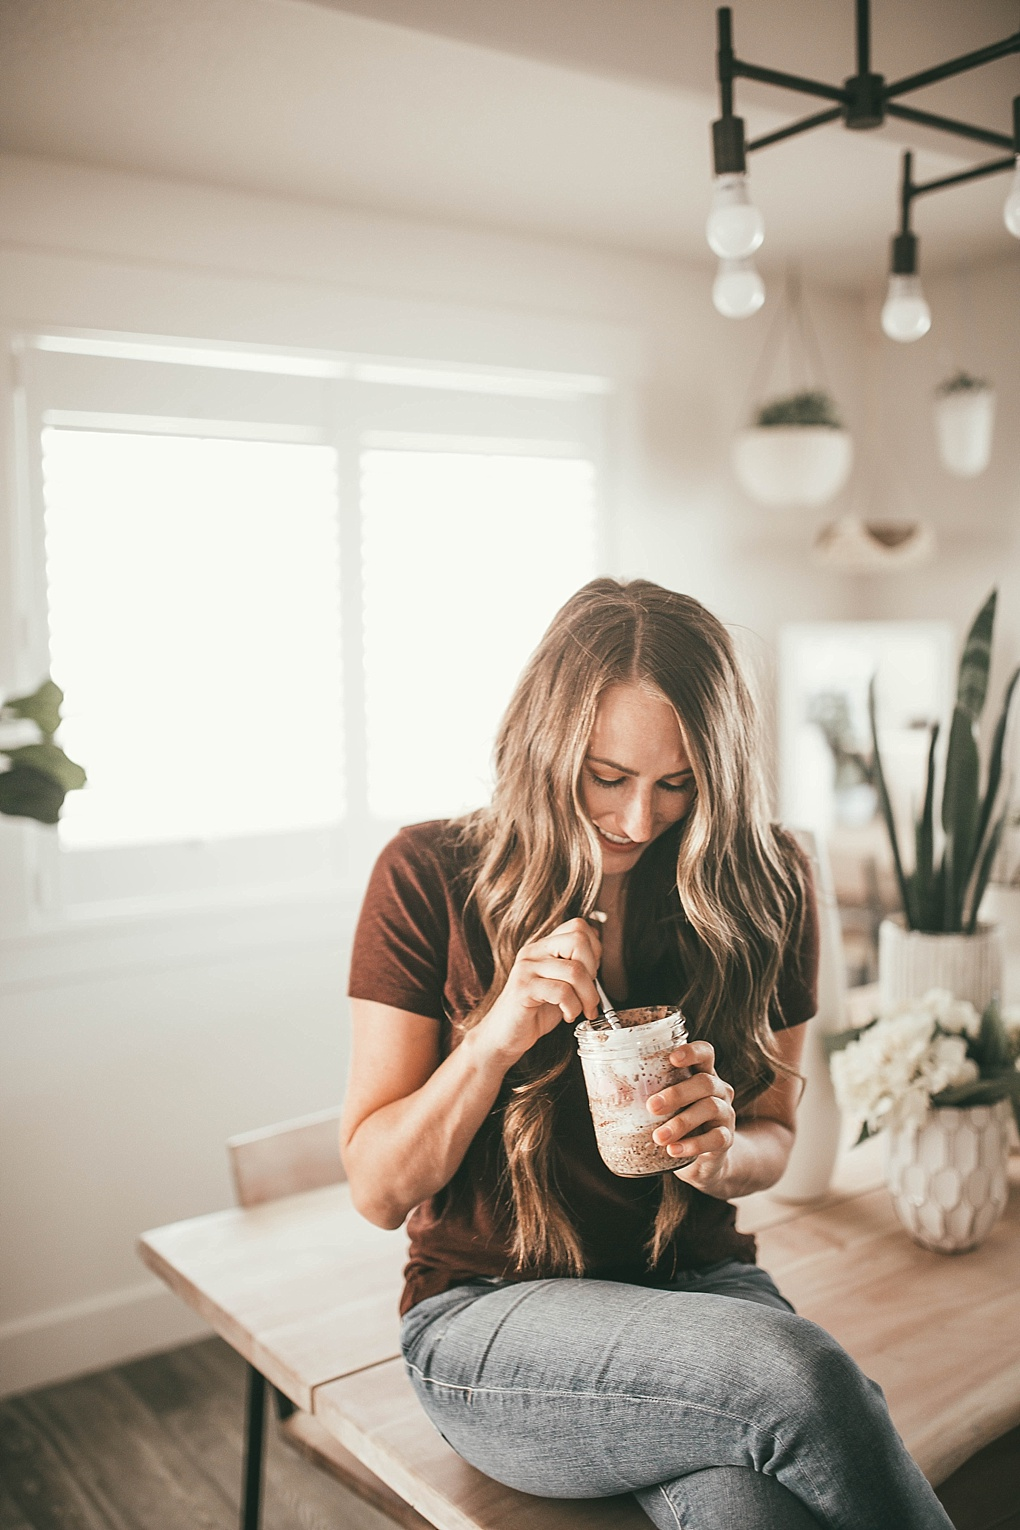 Breakfast just got a whole lot easier. Bookmark this post ASAP to see Utah Style Blogger Dani Marie's favorite overnight oats recipe. Trust me the whole family will love it.